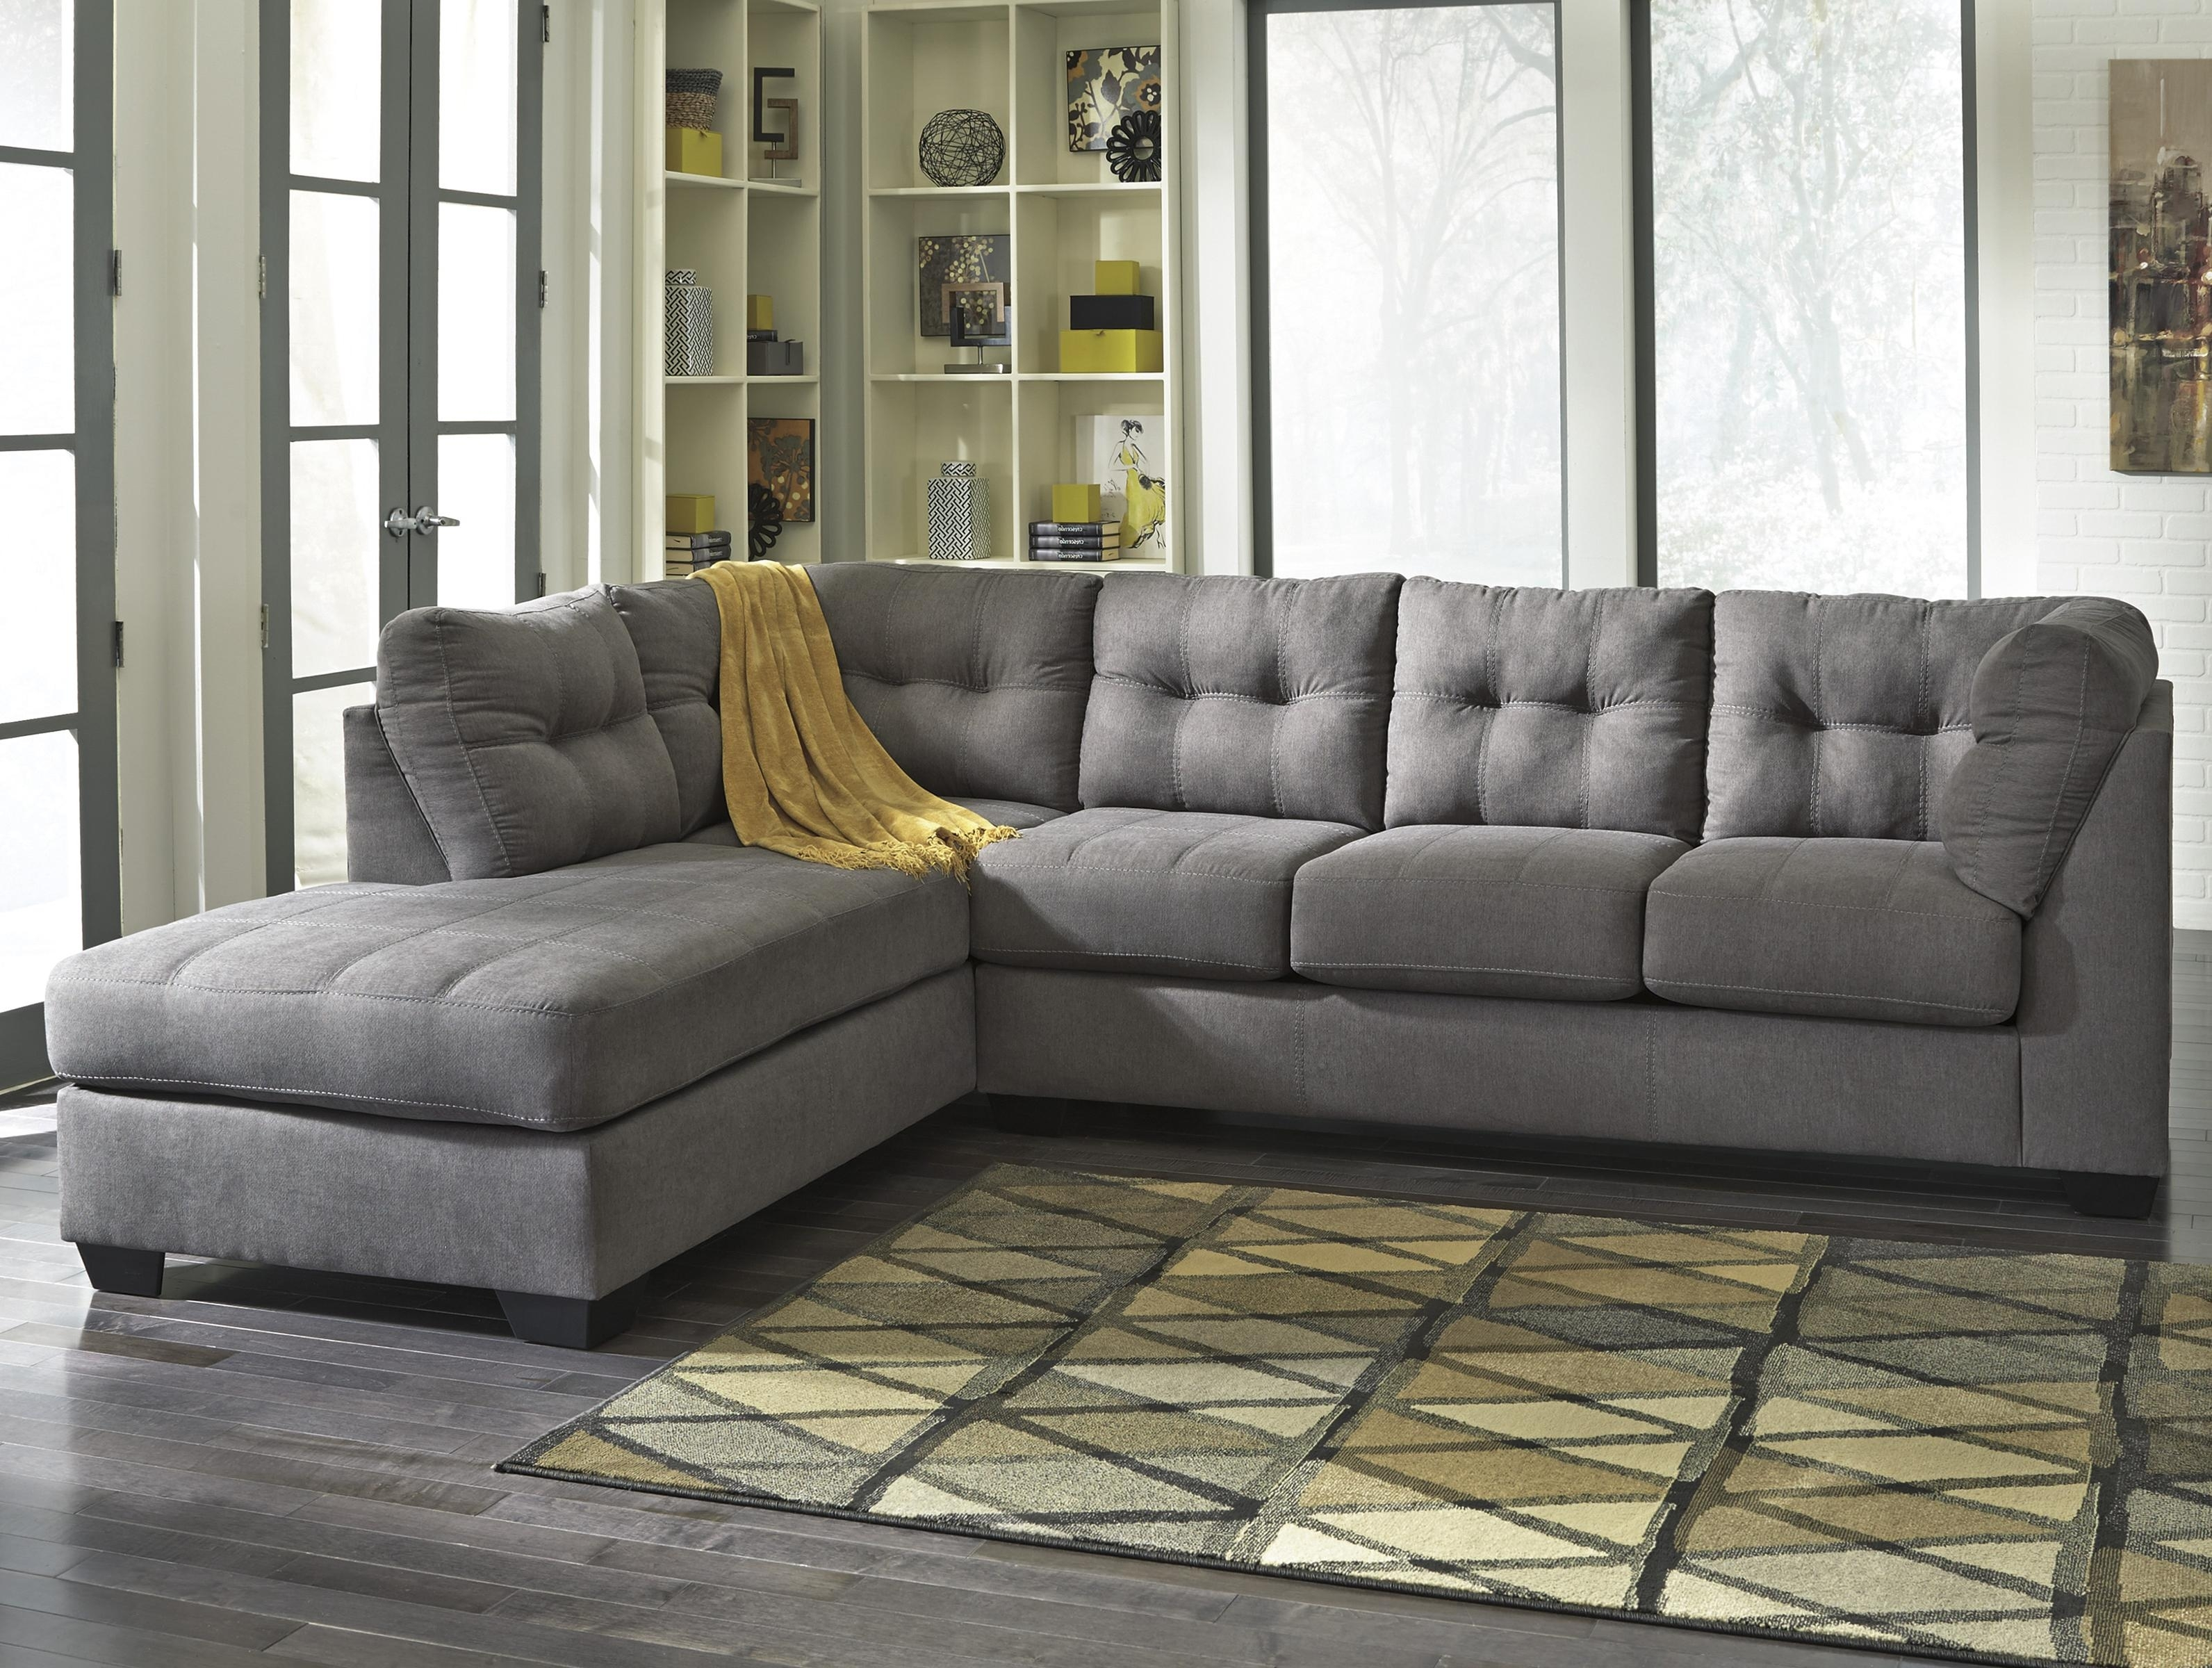 Benchcraftashley Maier - Charcoal 2-Piece Sectional With Left inside Jackson Tn Sectional Sofas (Image 4 of 10)